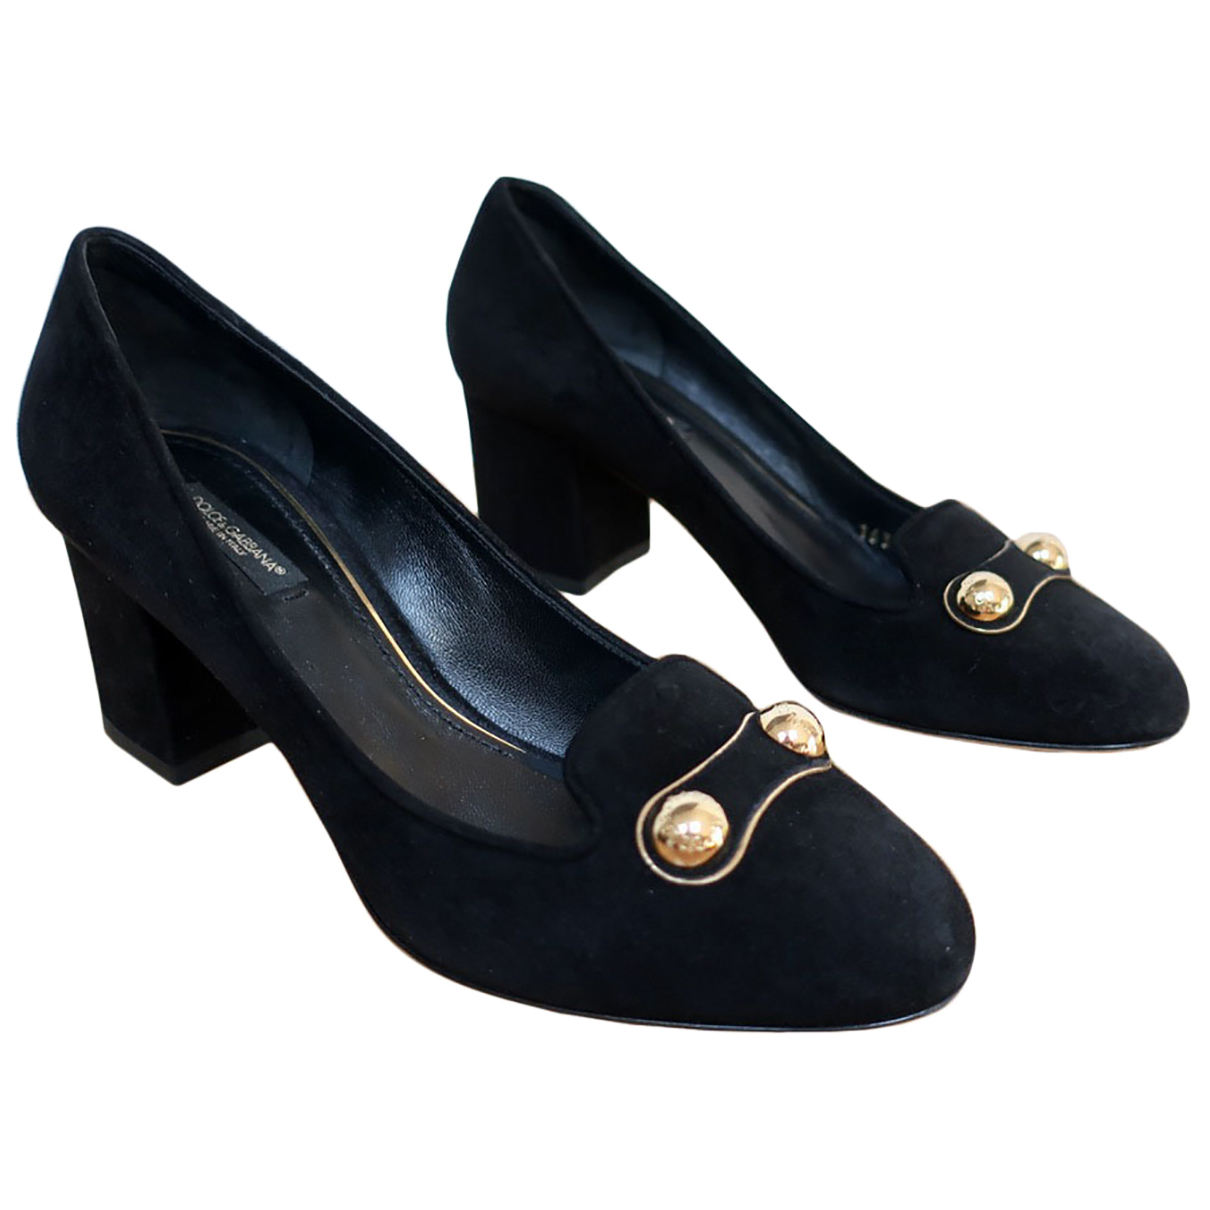 Dolce & Gabbana N Black Suede Heels for Women 38 EU